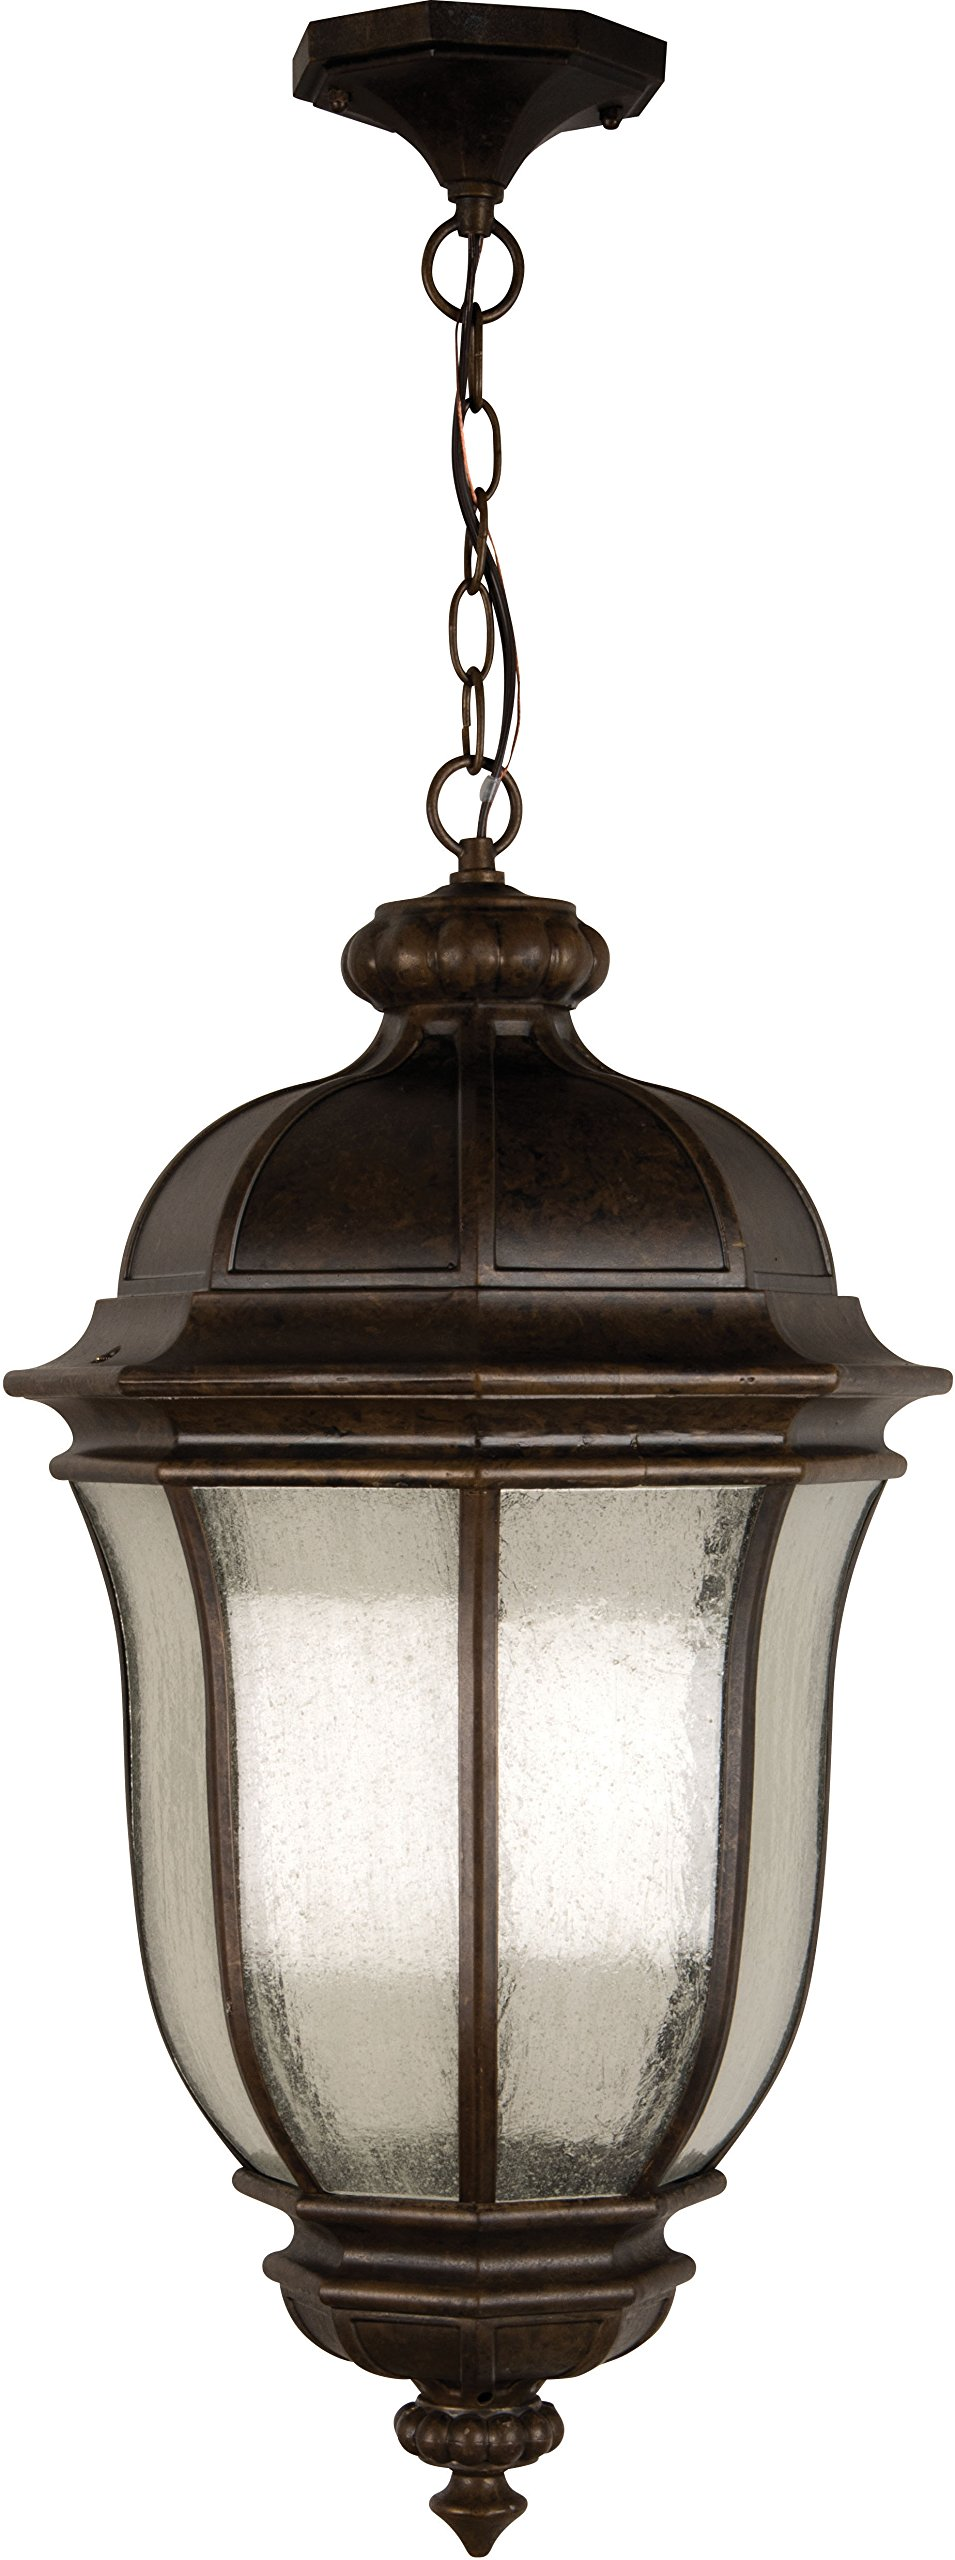 Craftmade Z3321-112 Hanging Lantern with Clear Seeded Glass Shades, Peruvian Bronze Finish